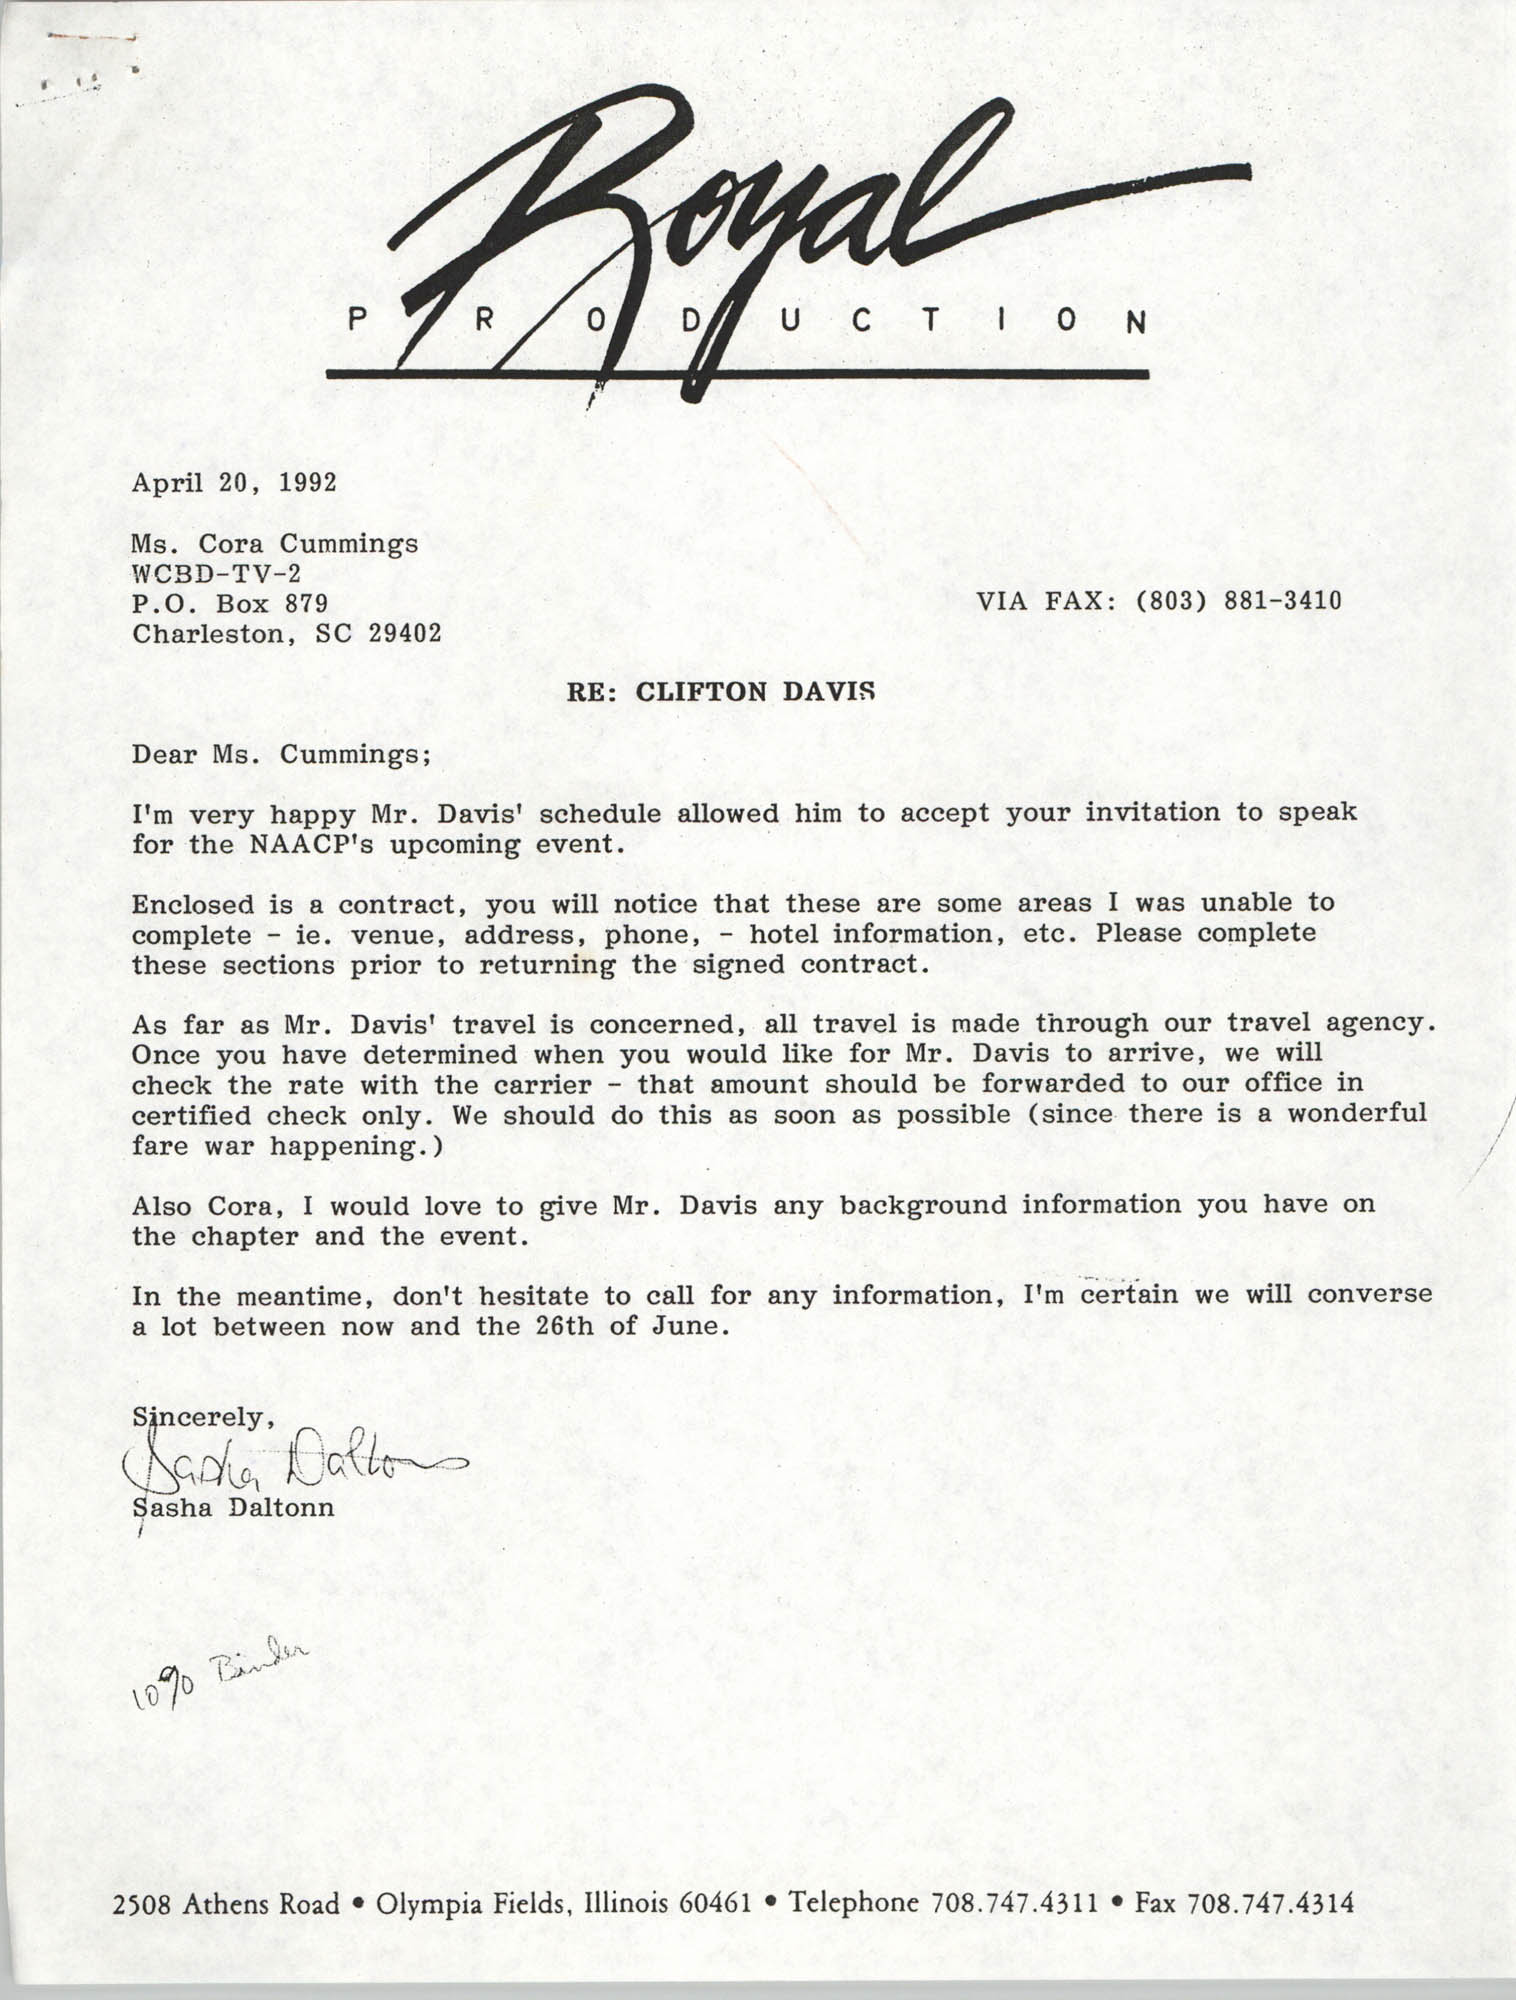 Letter from Sasha Daltonn to Cora Cummings, April 20, 1992